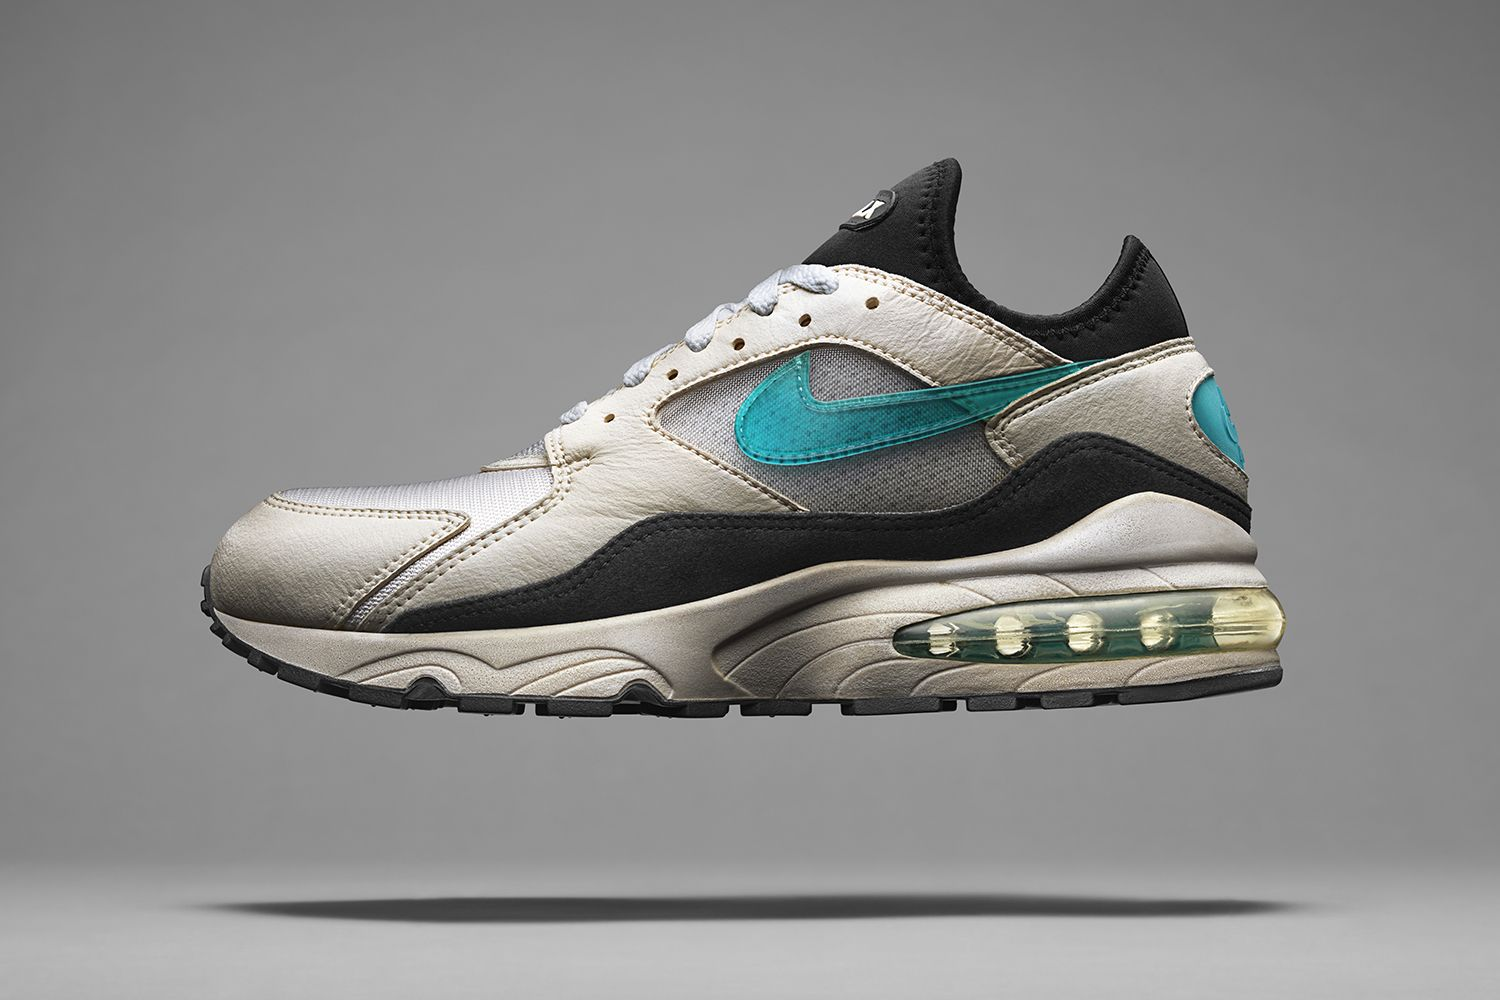 The Beginner's Guide to OG Nike Air Max Colorways